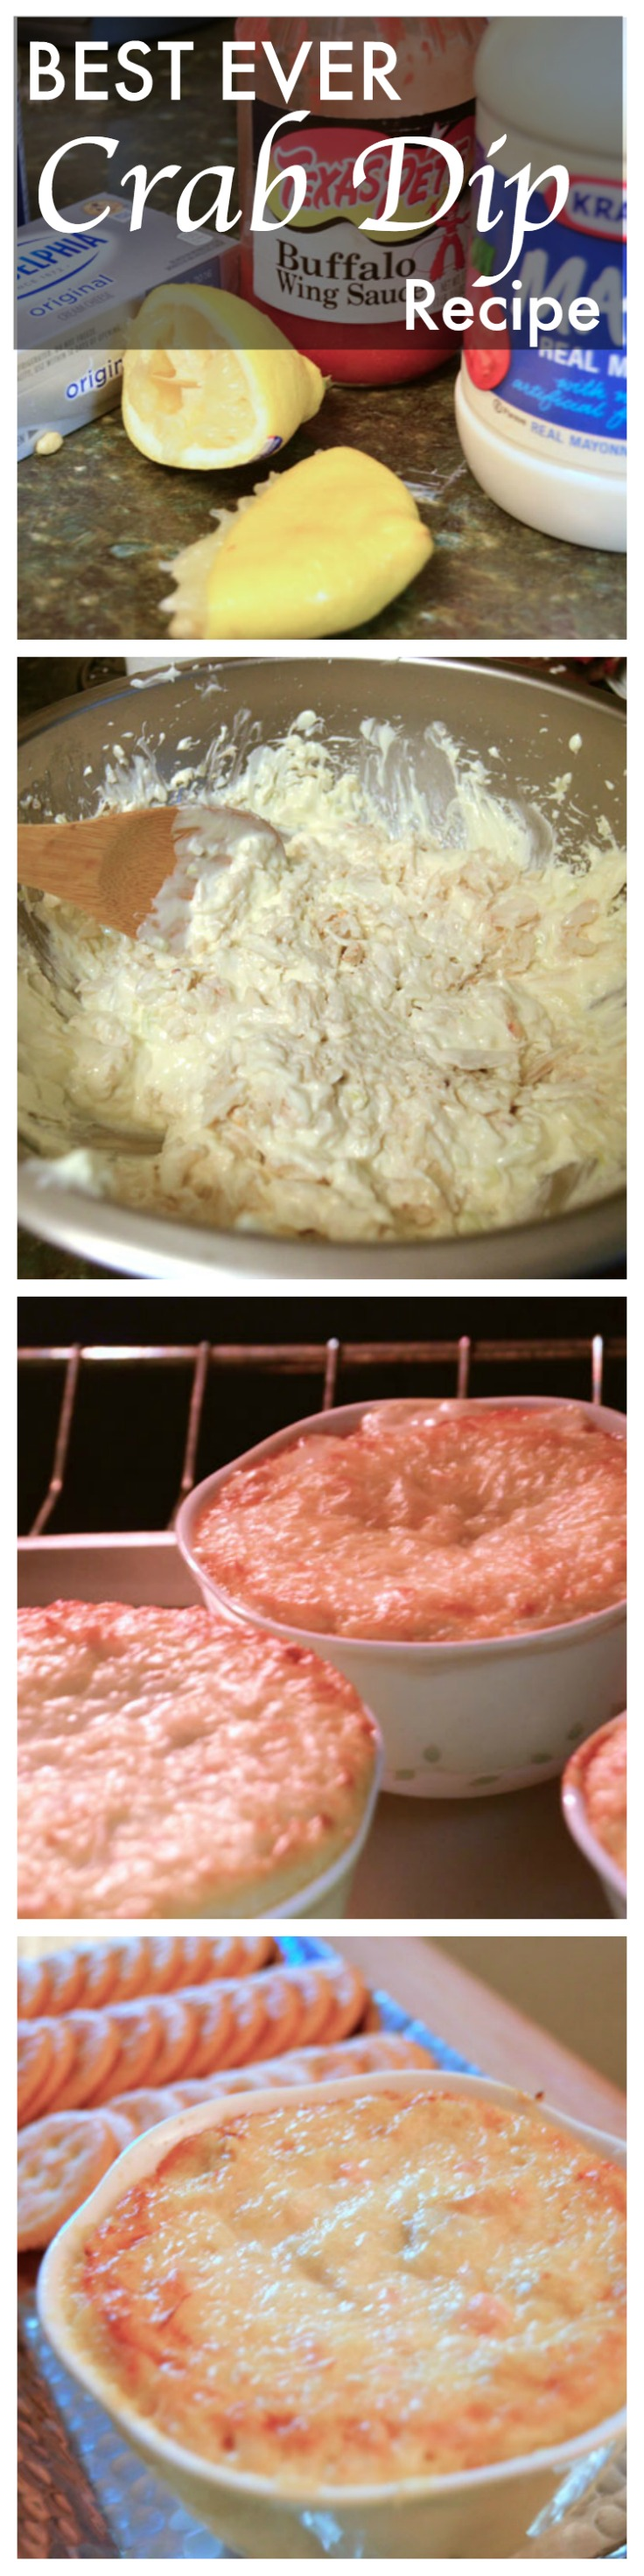 Best Ever Crab Dip Recipe_Create&Babble.com